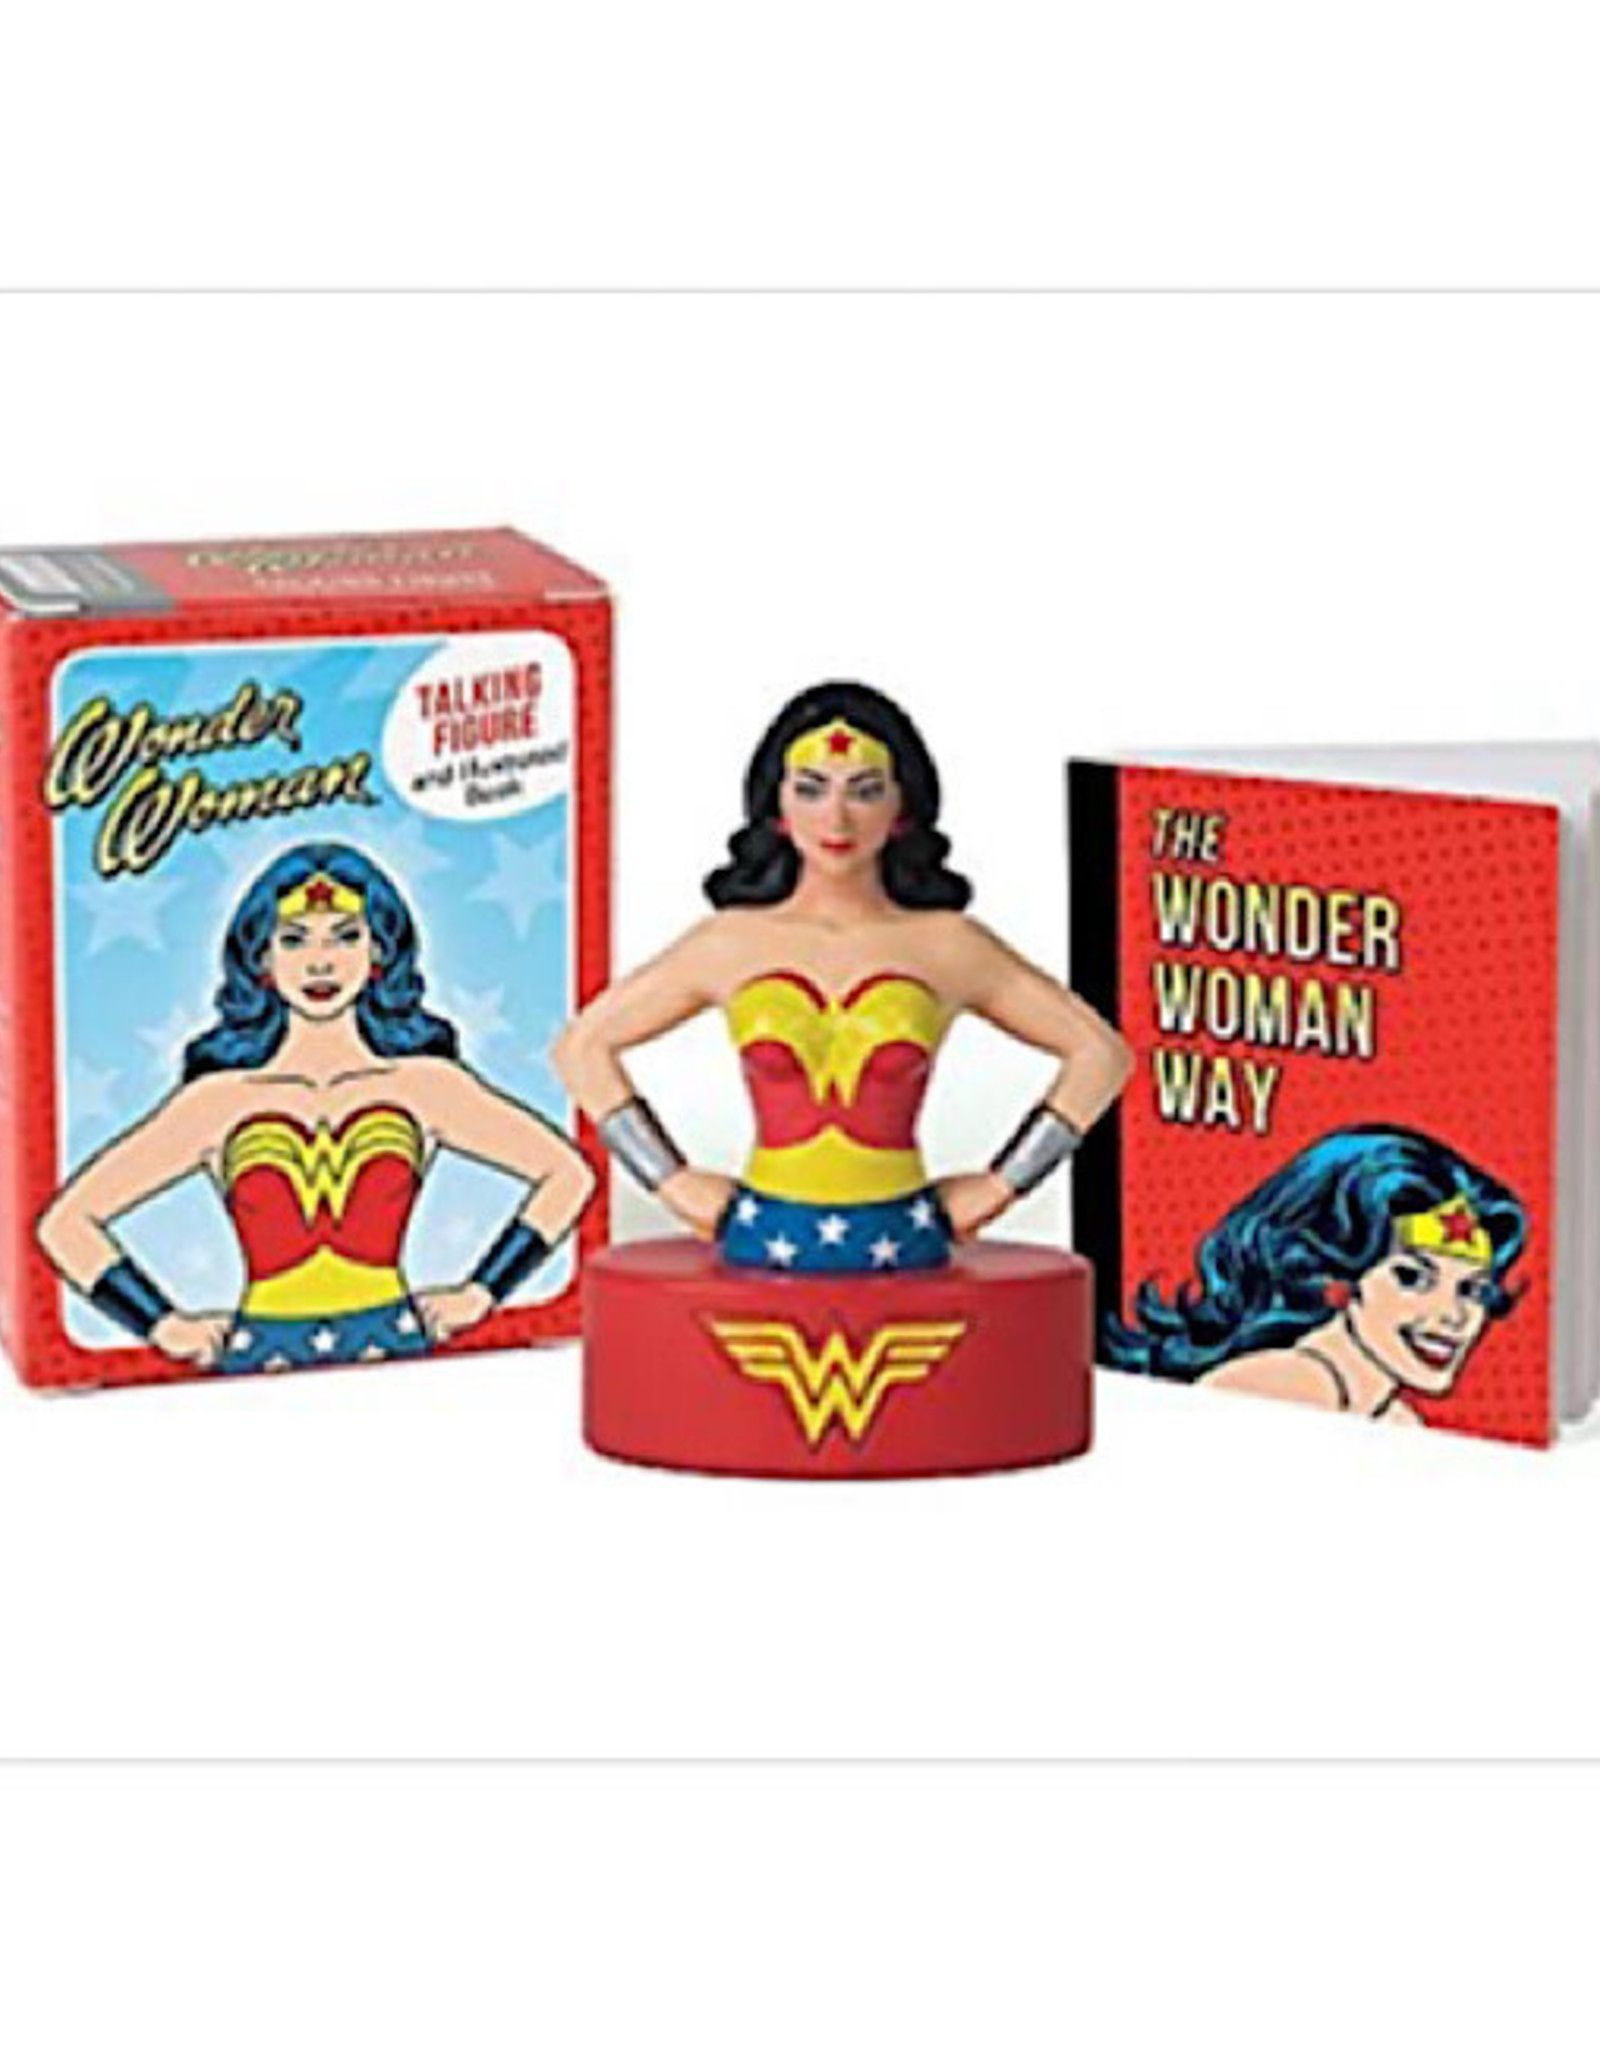 Figurine (Talking) - Wonder Woman